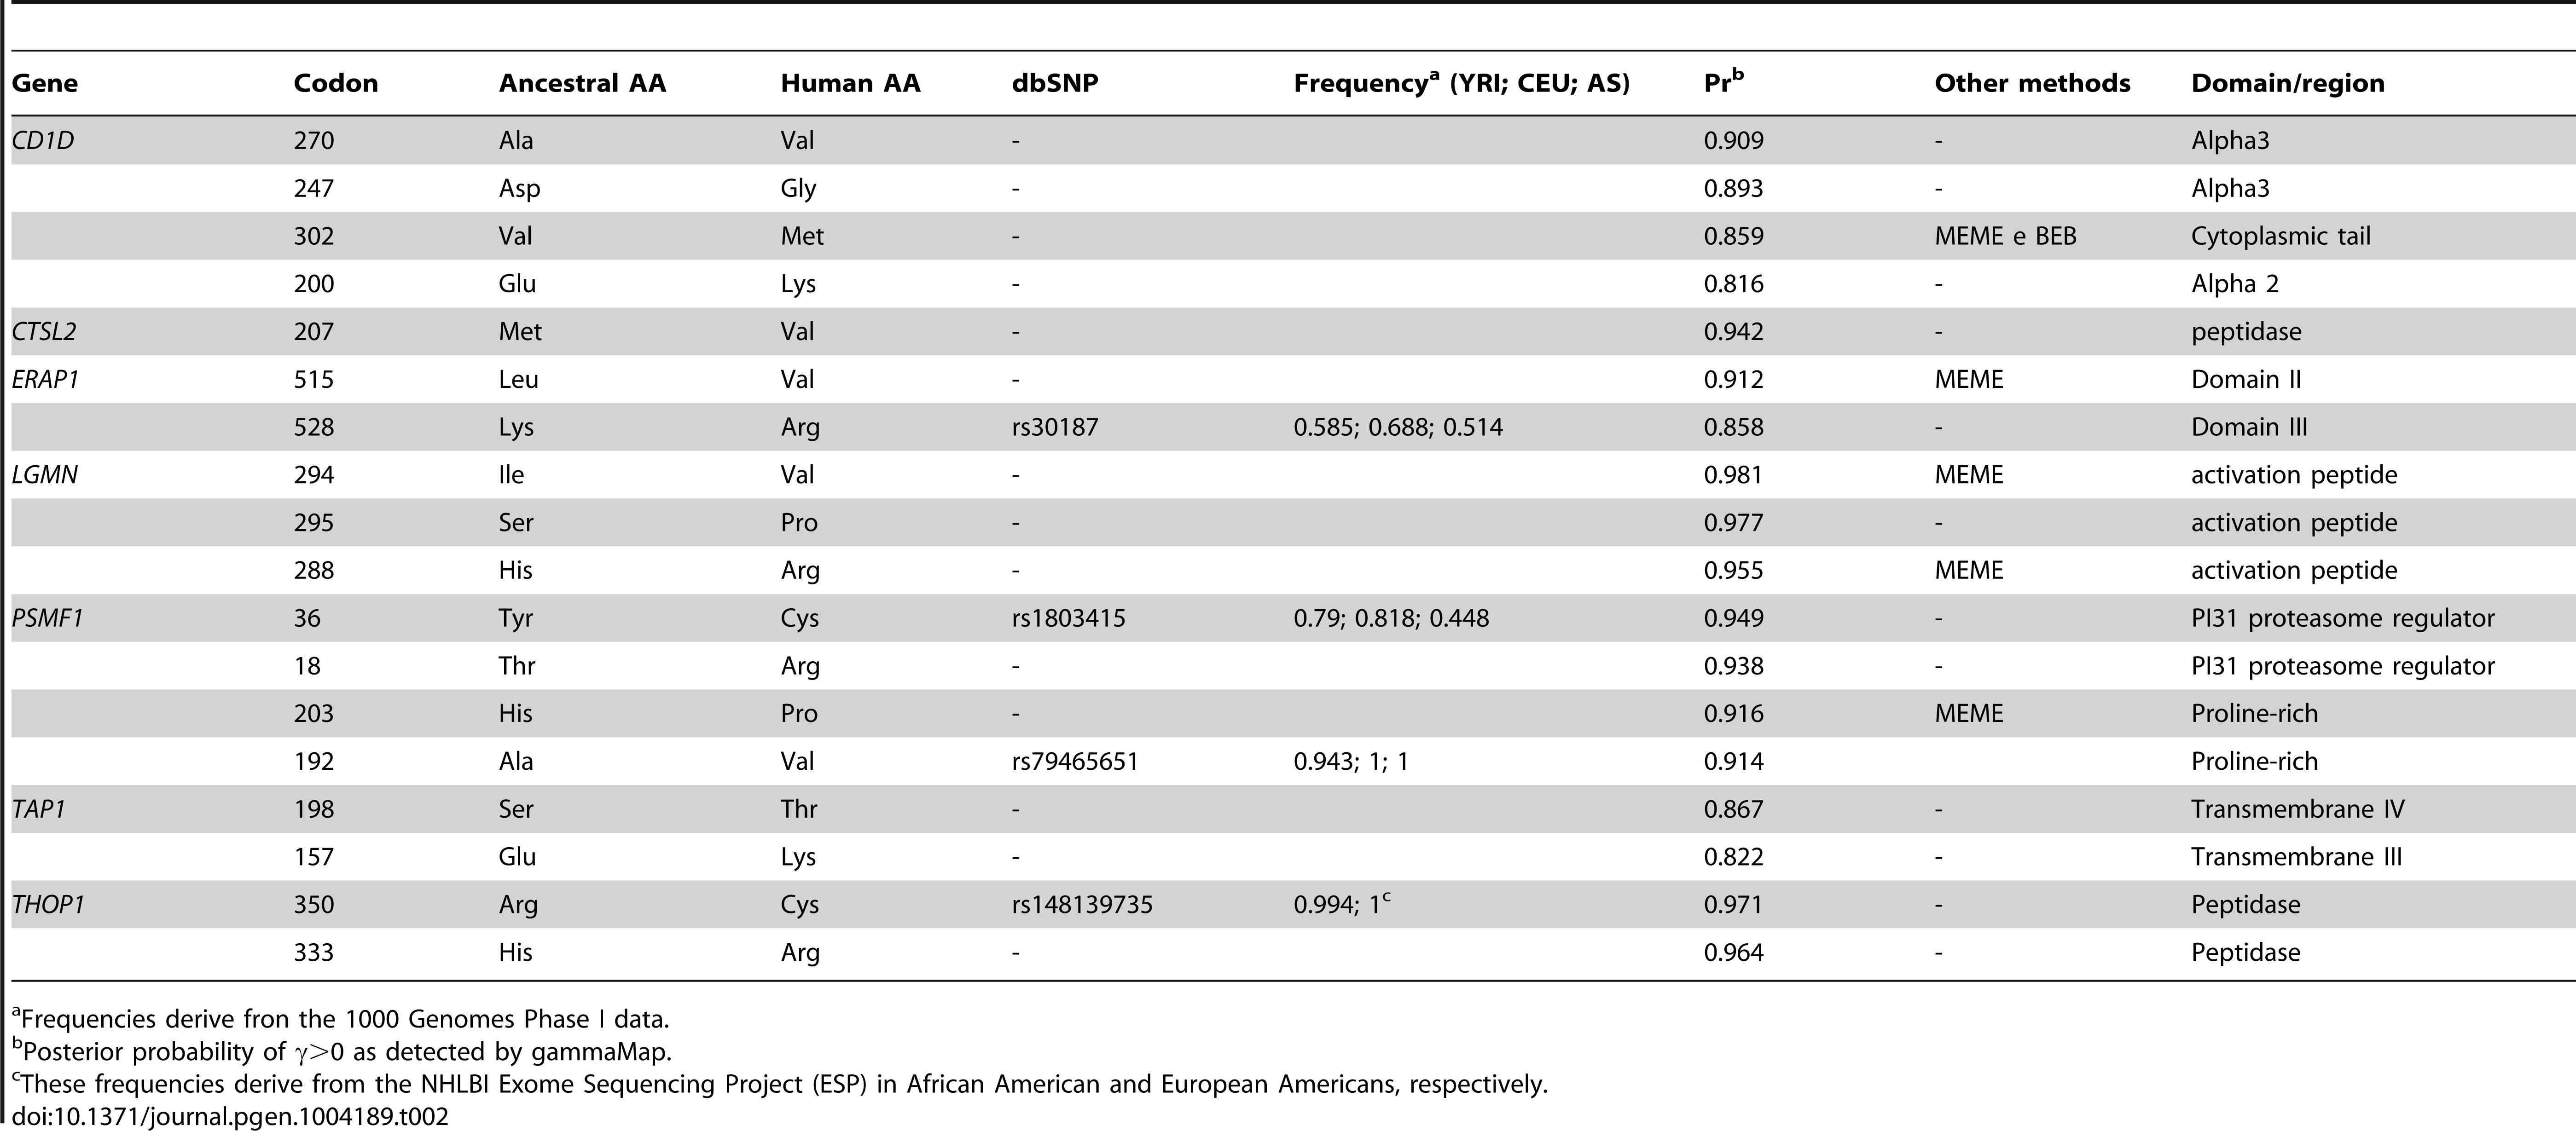 Positively selected sites in the human lineage.